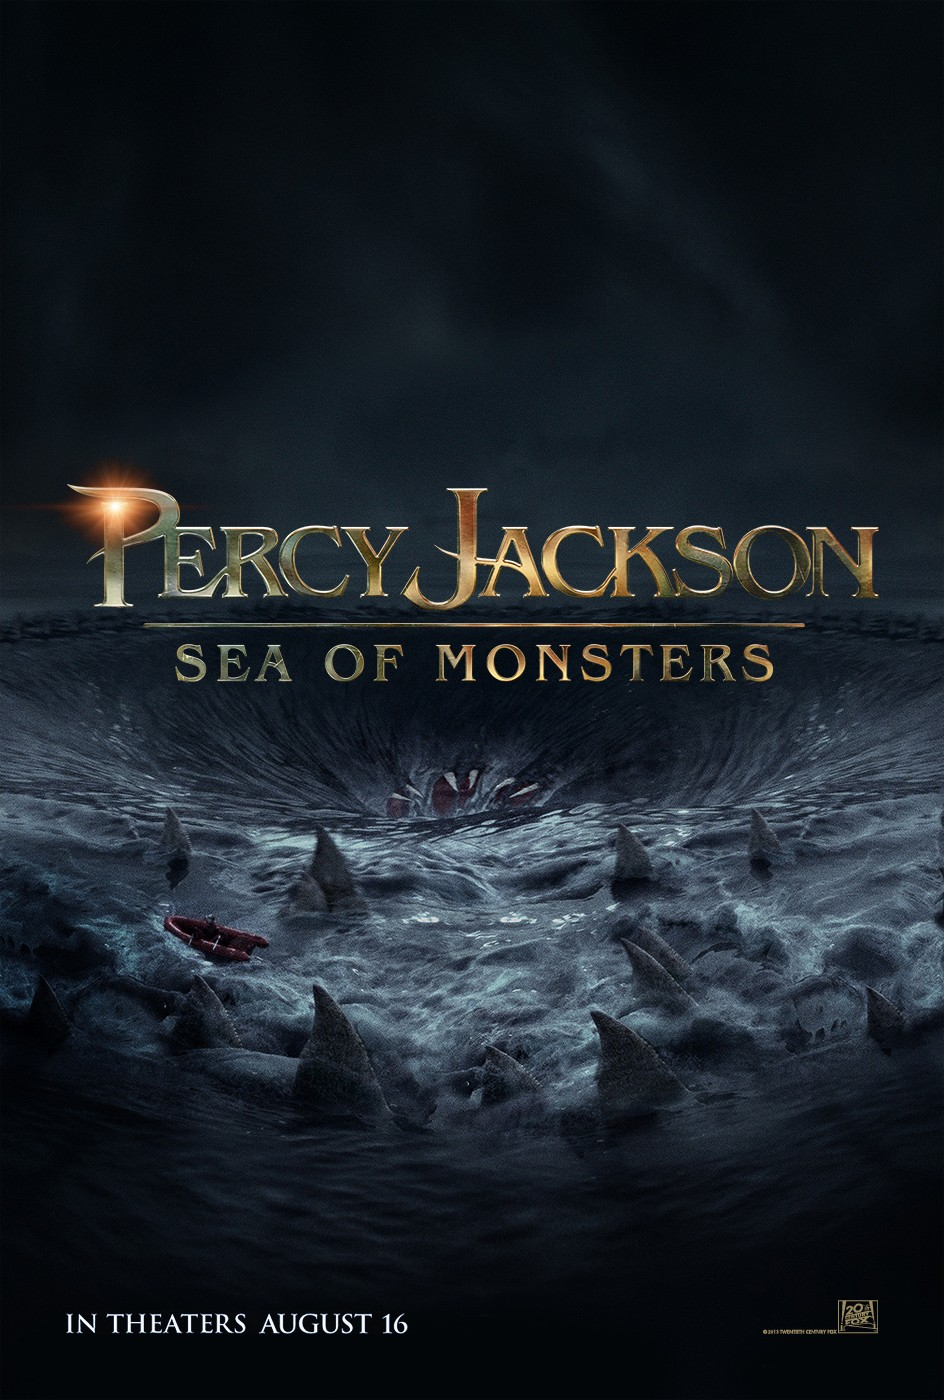 Why You Should Go See Percy Jackson: Sea of Monsters